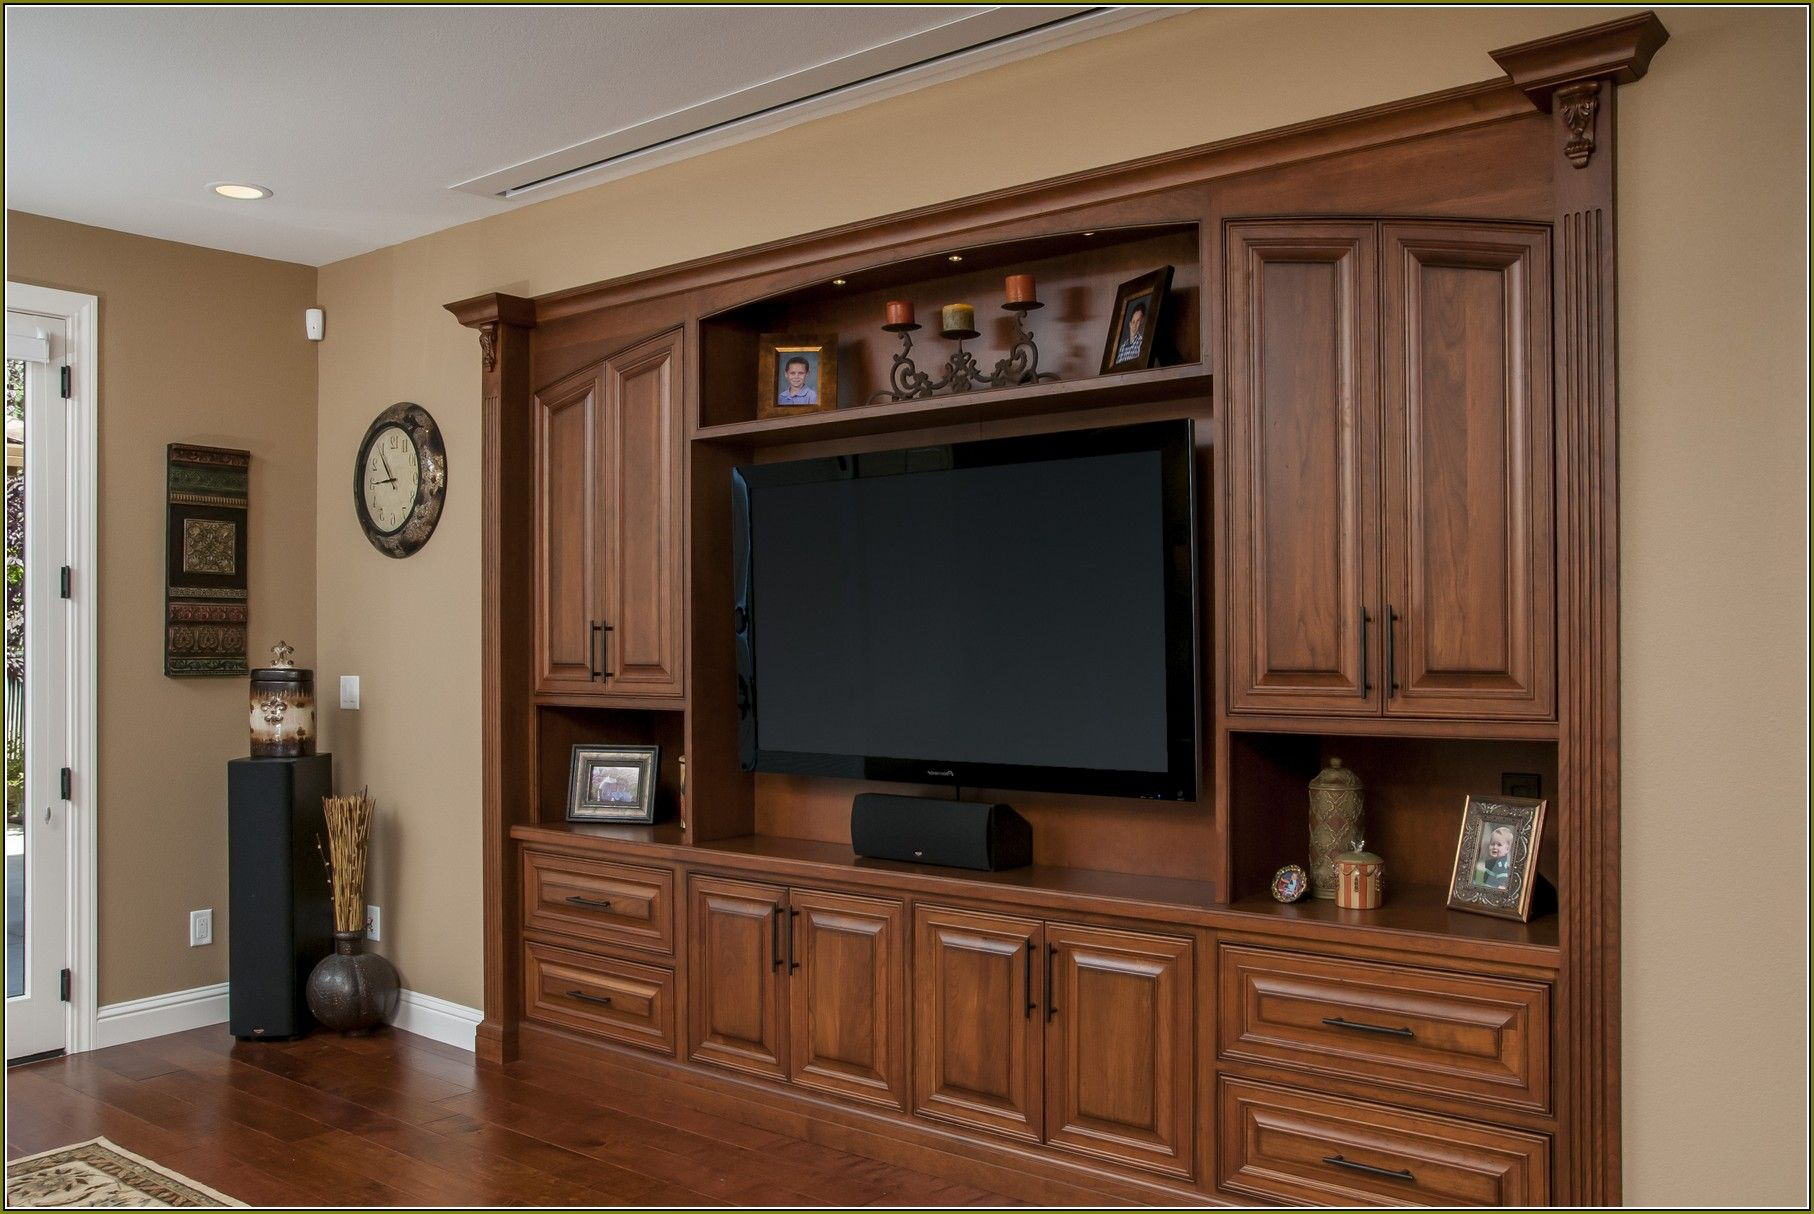 Wall to Wall cabinets | Posts related to Wall Flat Screen Tv ...